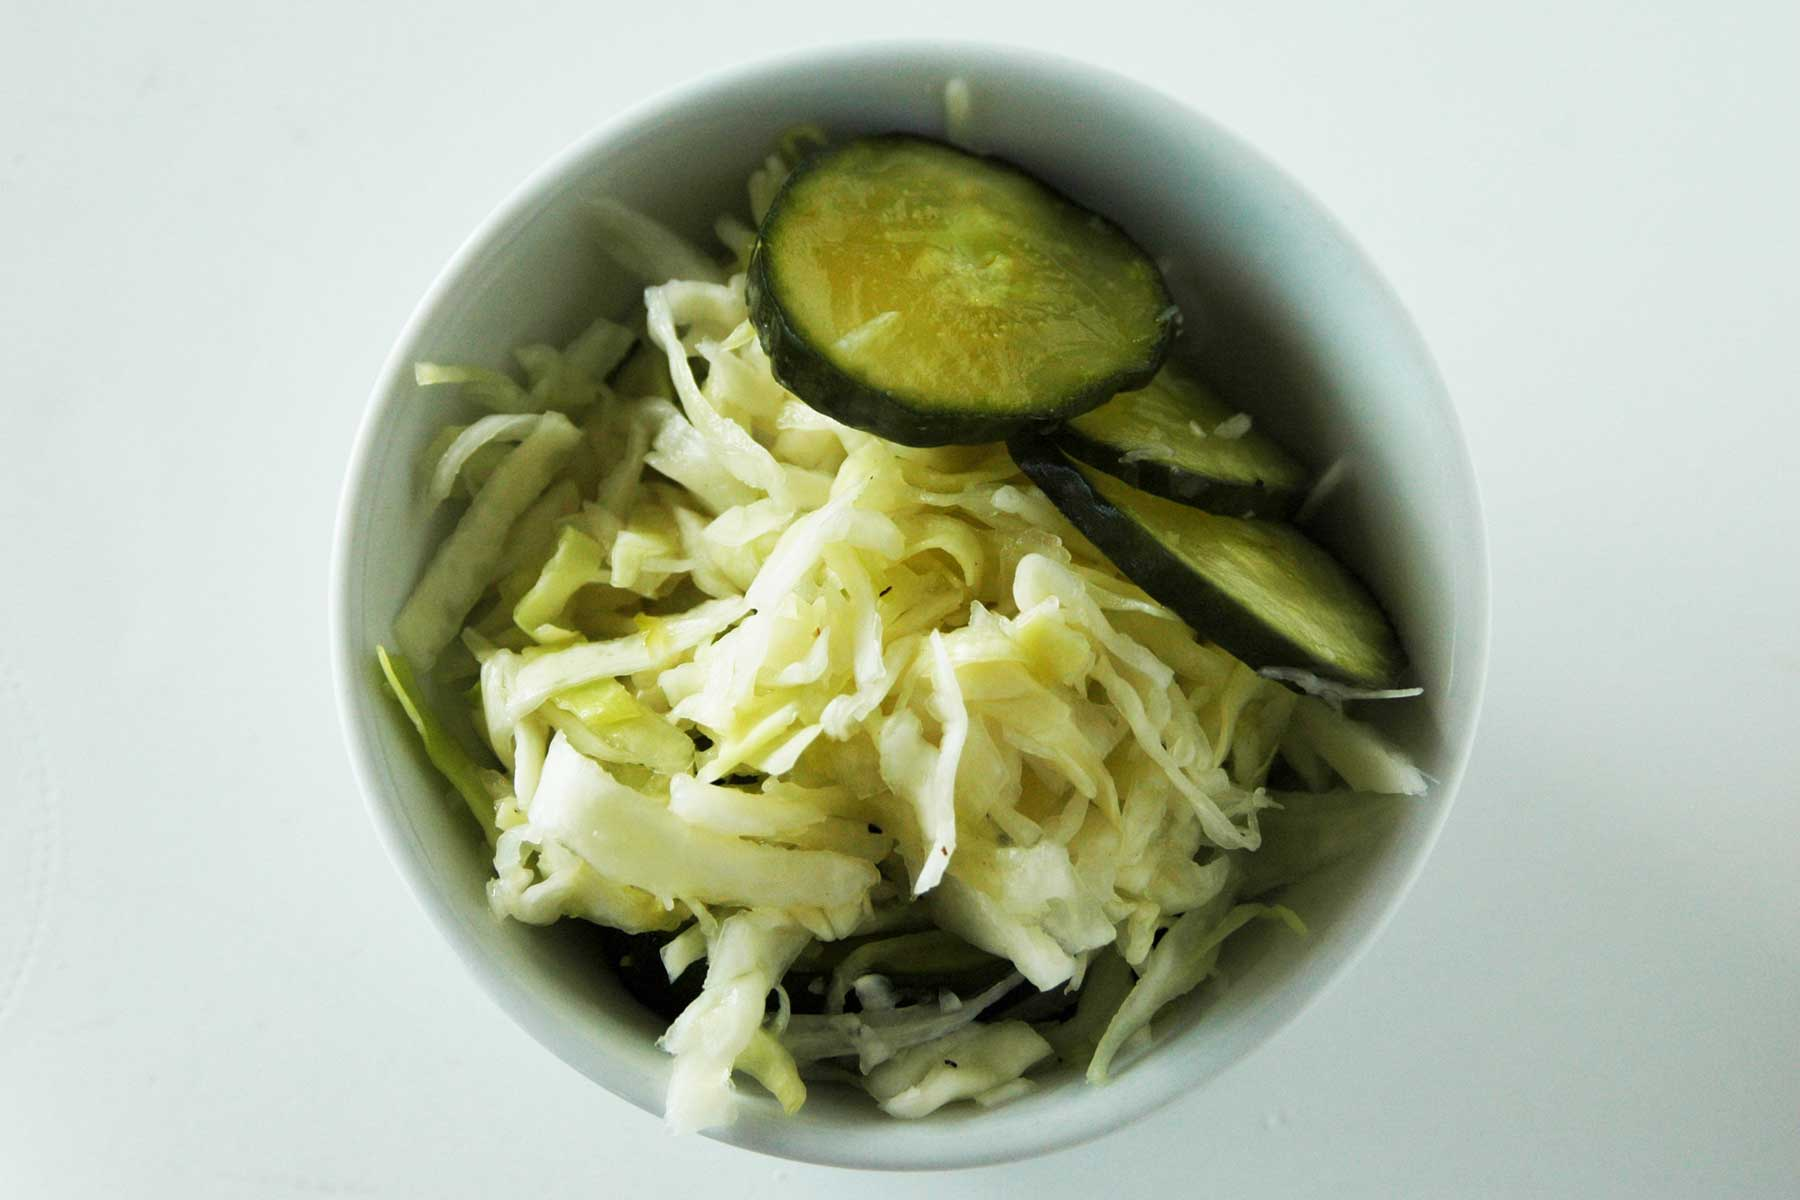 fermented cabbage and cucumber